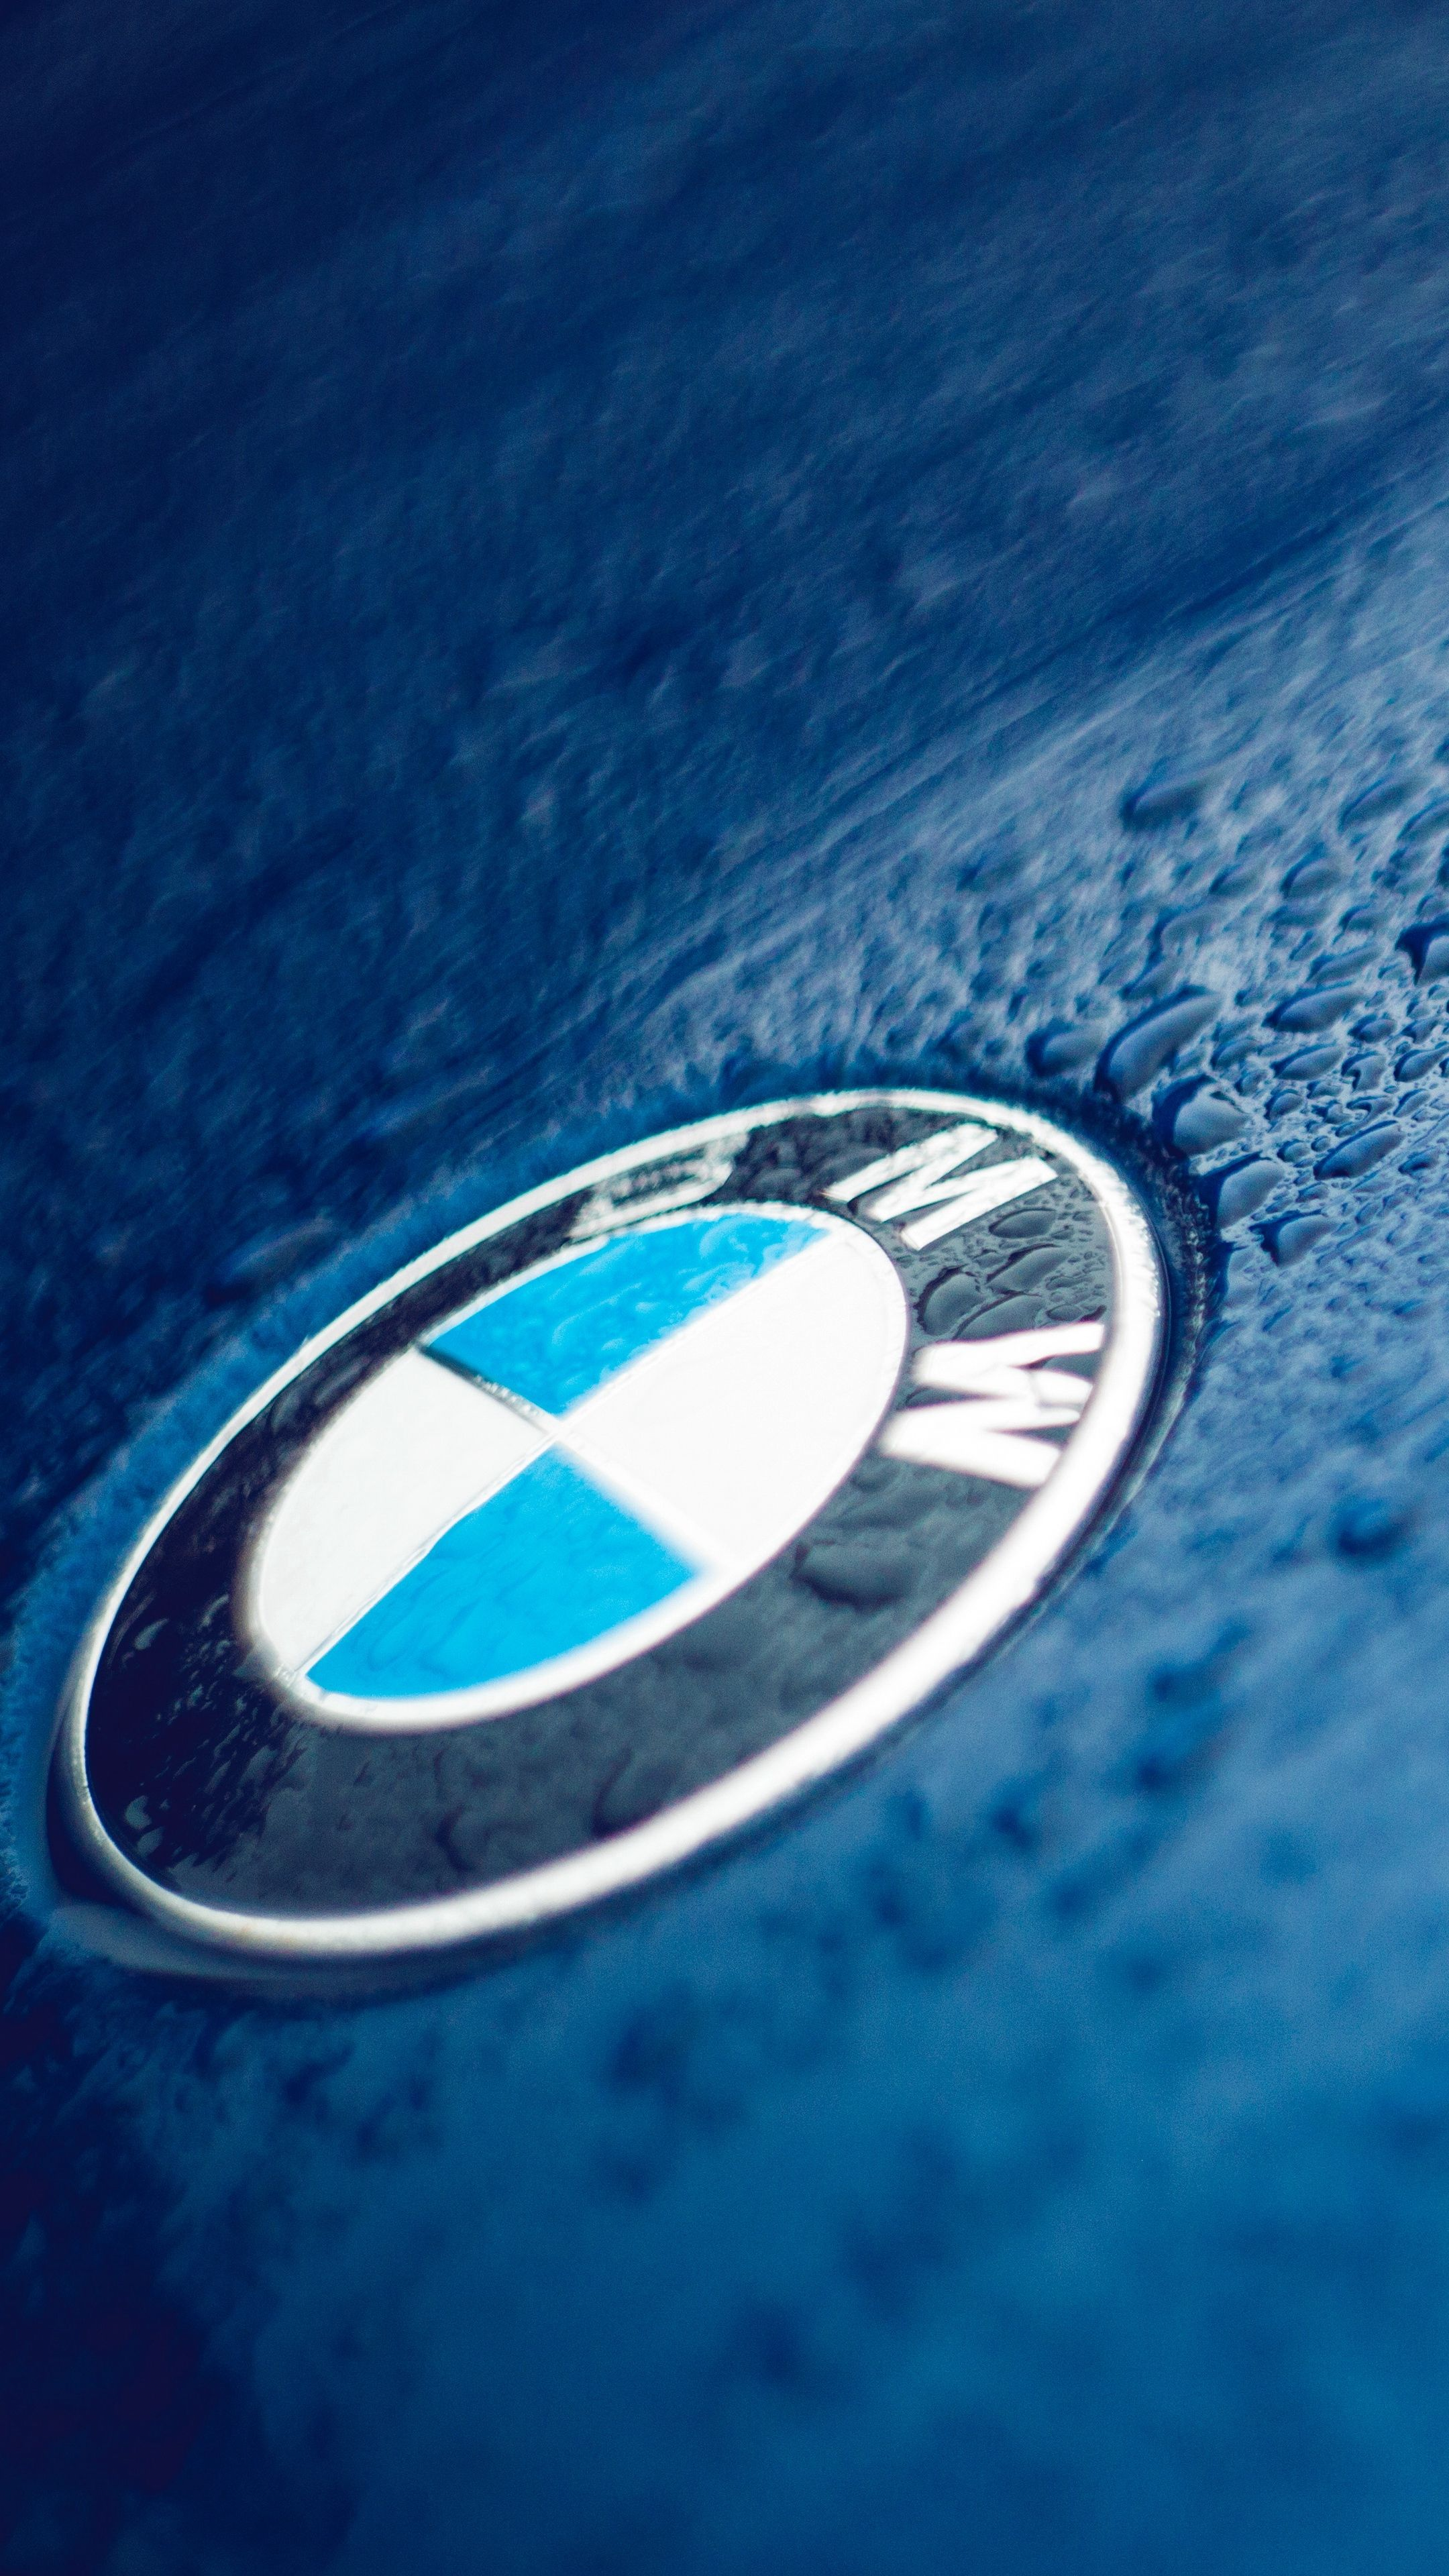 Cars Bmw Logo Drops Wallpapers Hd 4k Background For Android